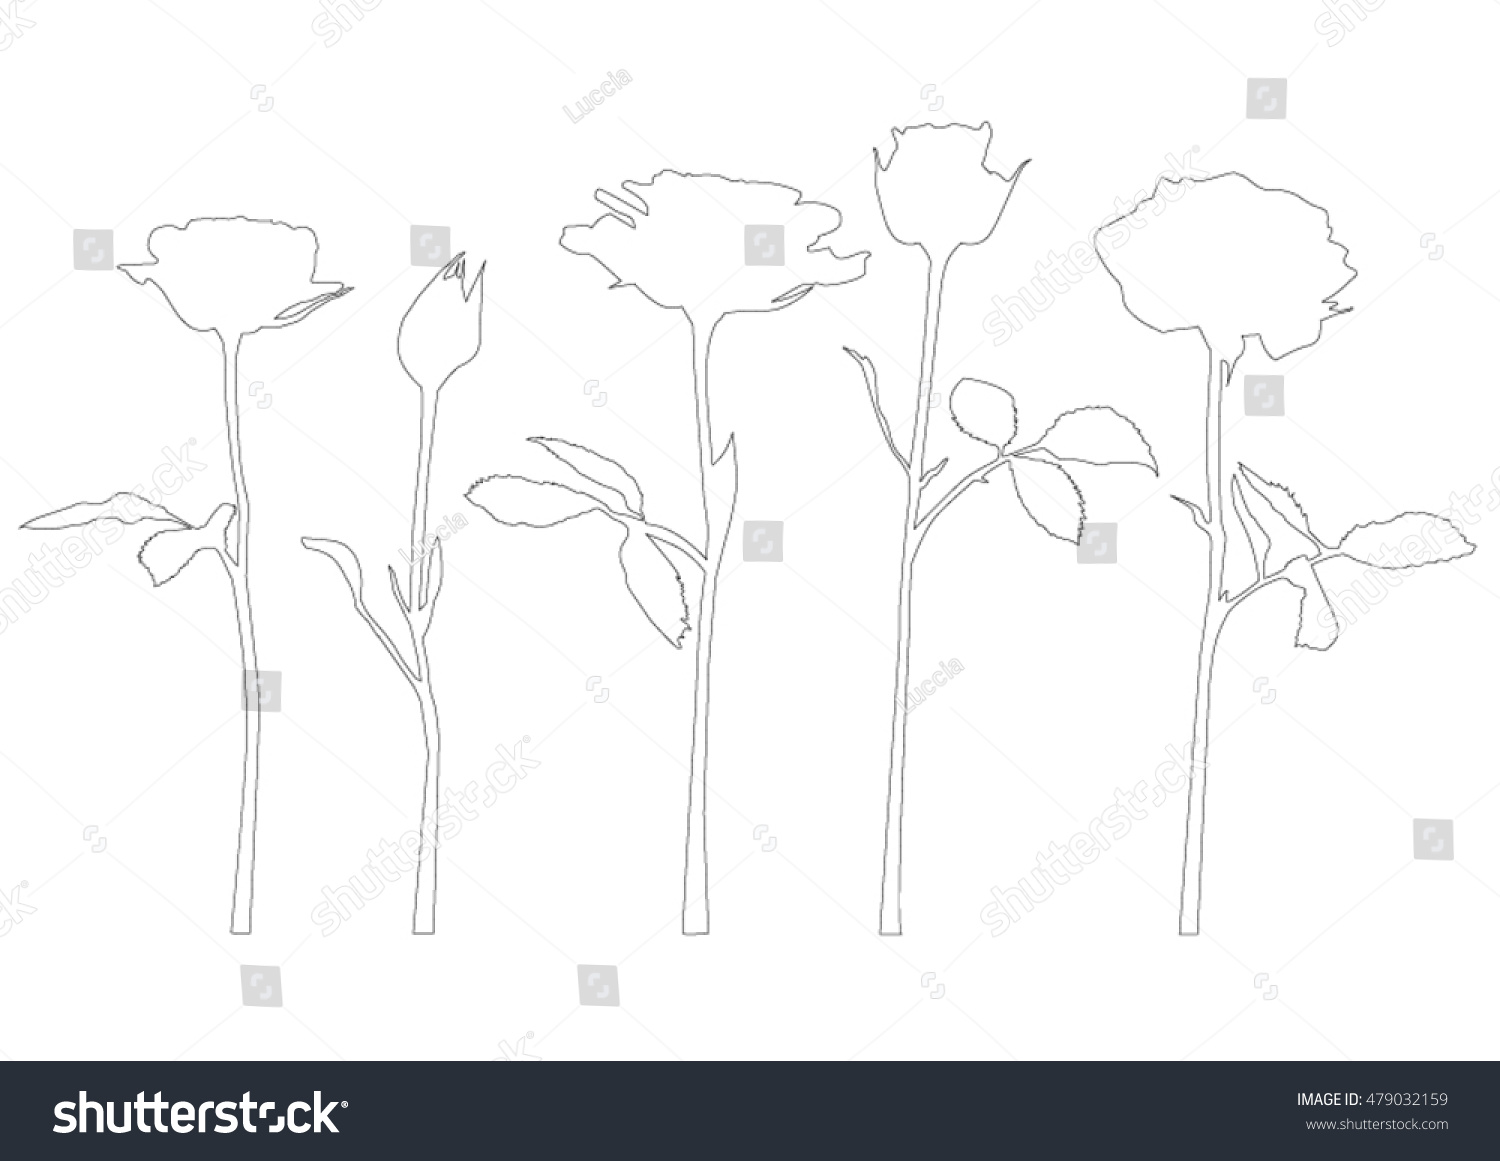 Contour Line Drawing Rose : Roses on stem black silhouette outlines stock vector royalty free